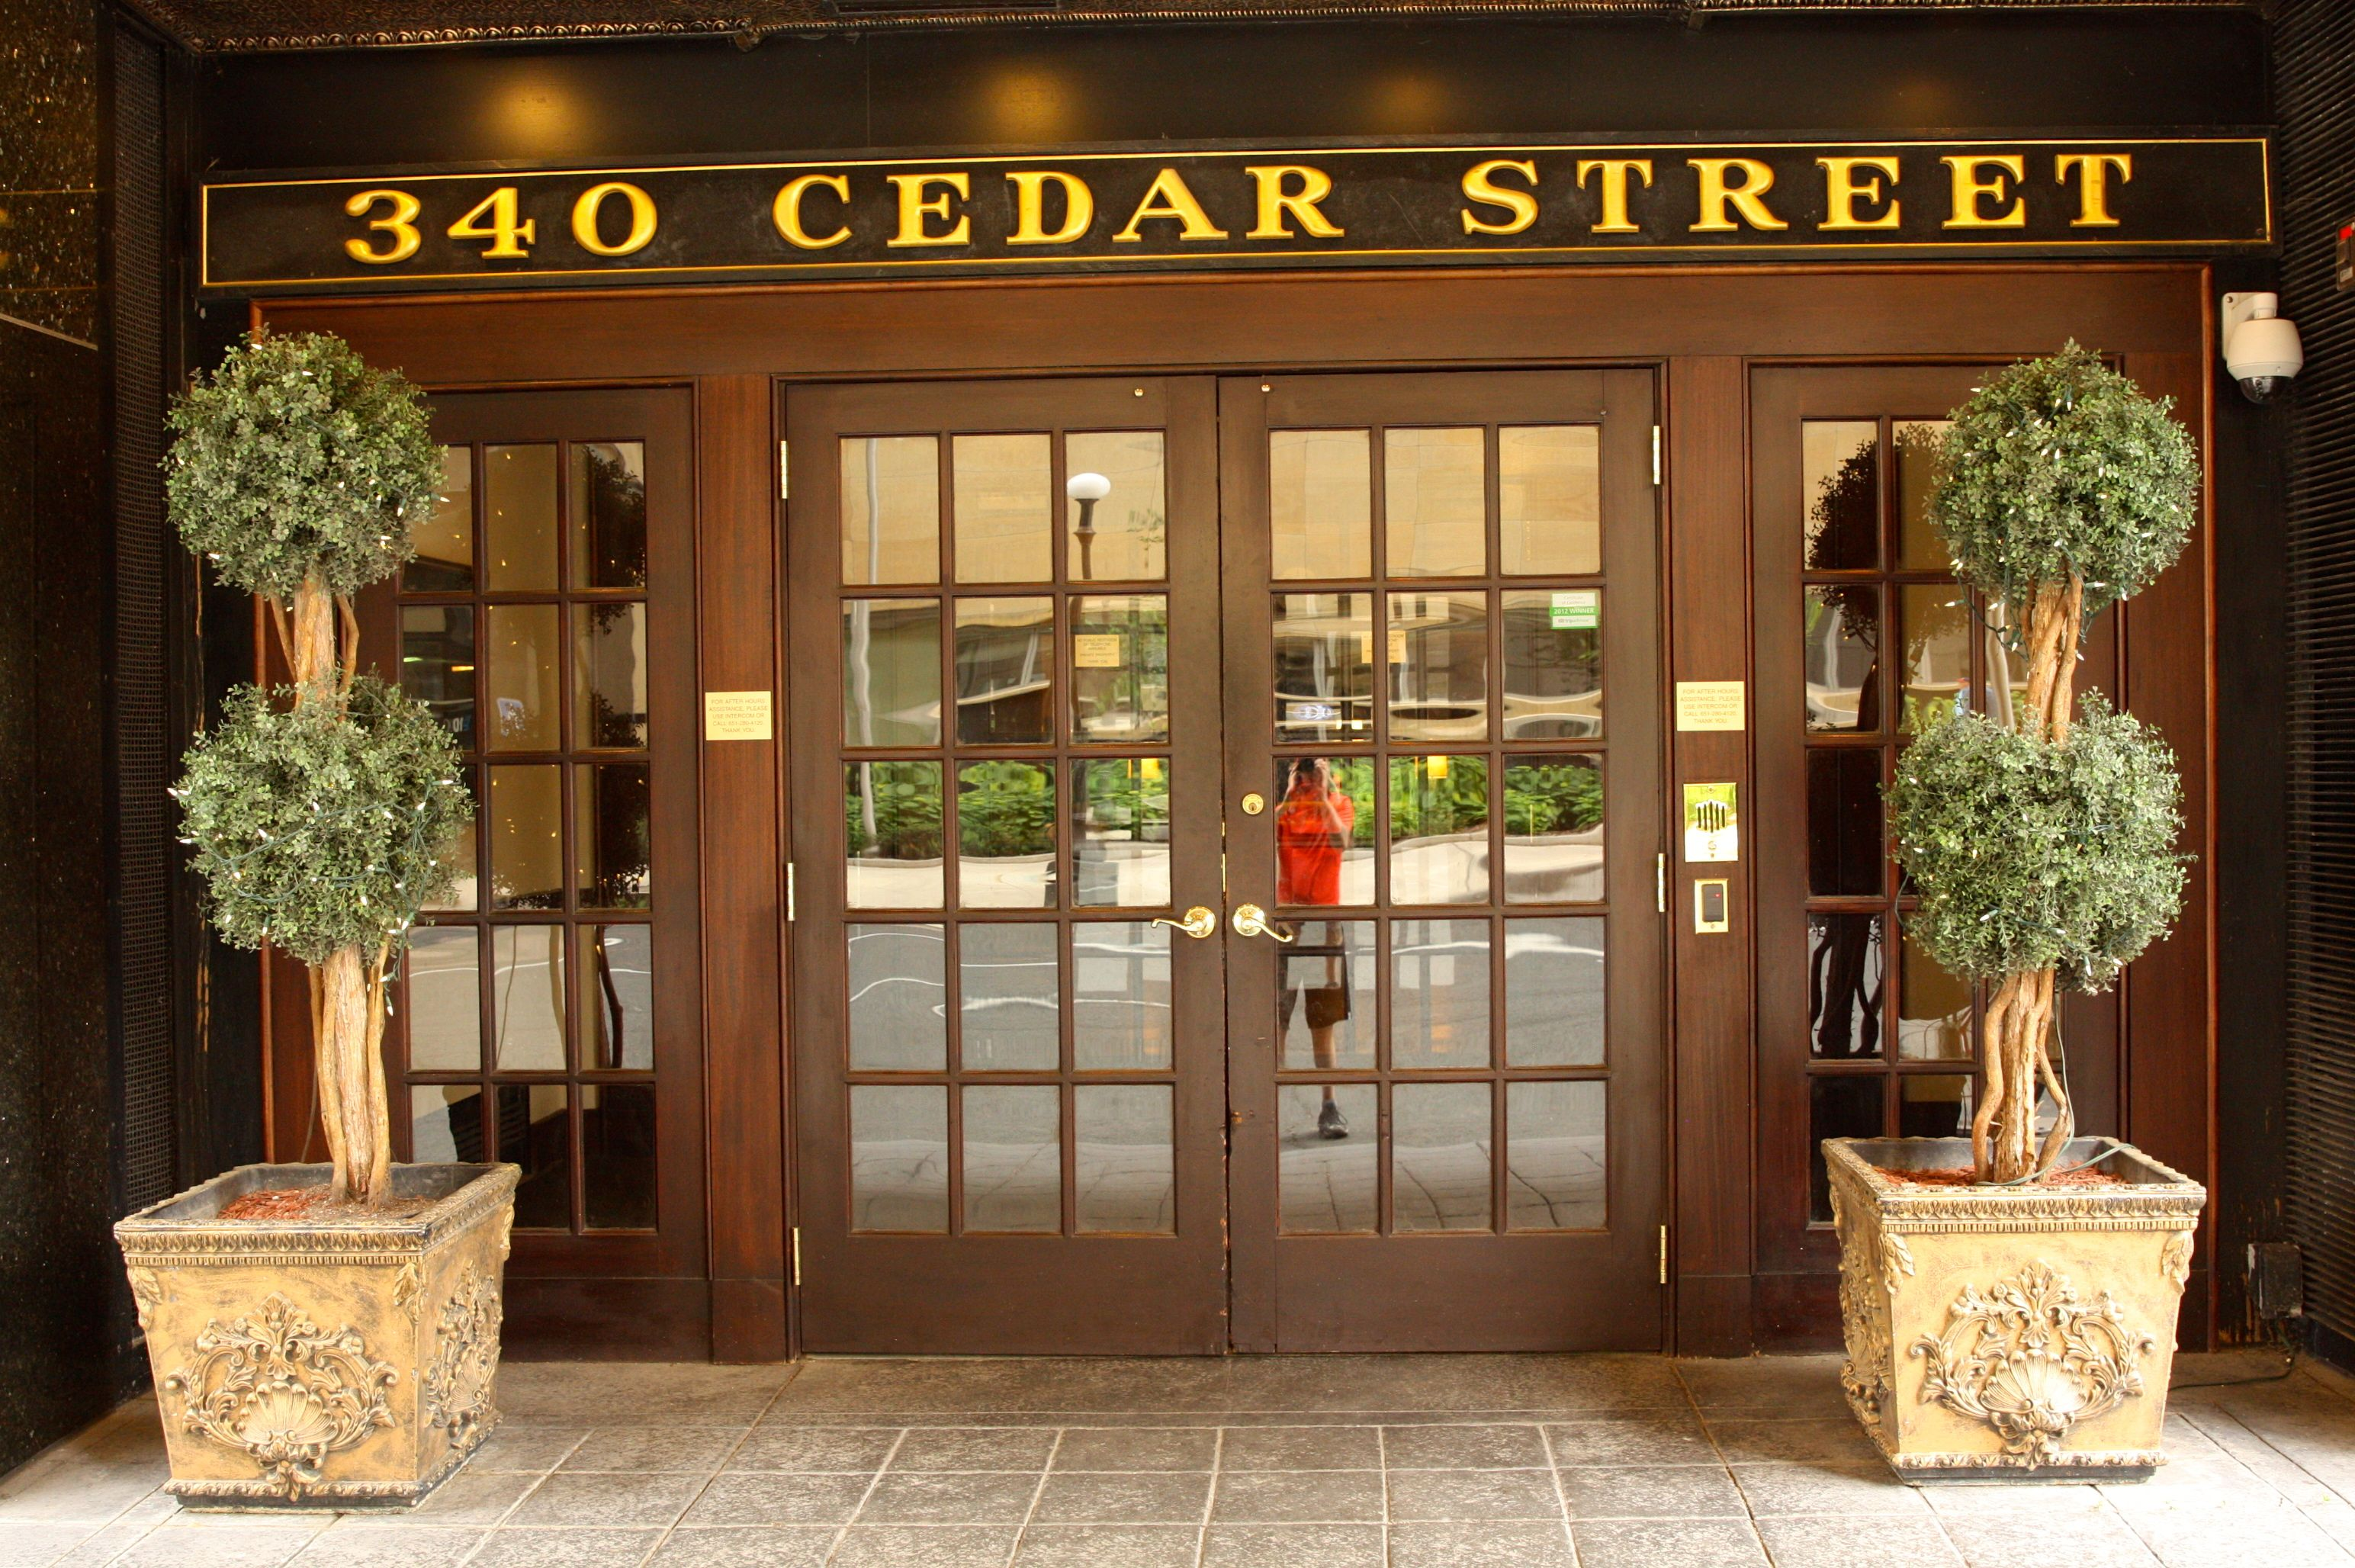 340 Cedar is also the address of the St. Paul Athletic Club and Hotel 340, the east metro's first boutique hotel, according to its website.